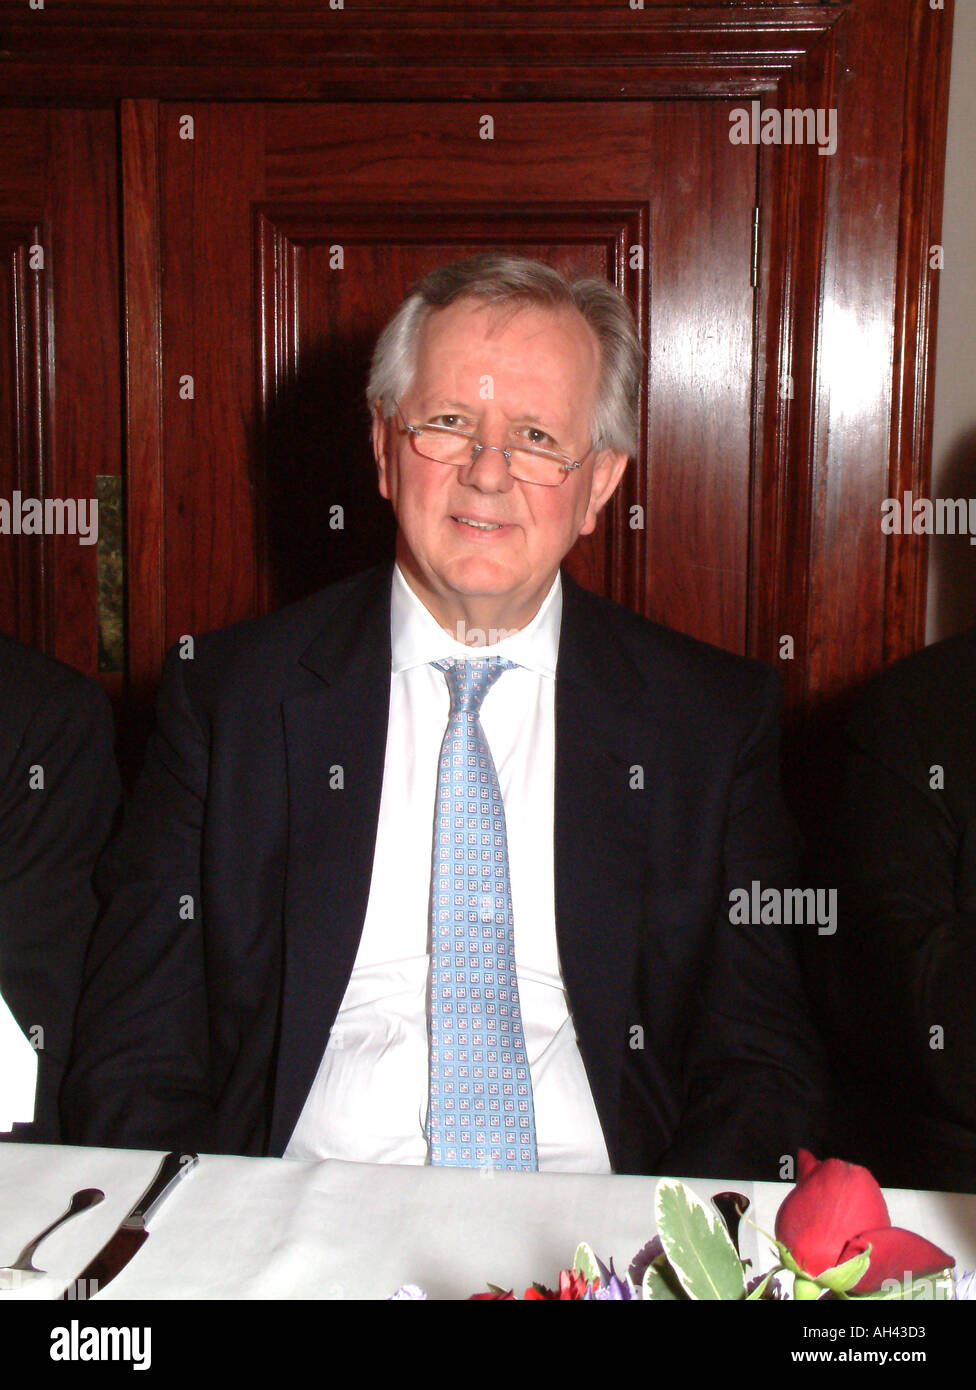 Steven Norris Former Conservative MP and Minister Portrait London Mayoral Candidate Oct 2003 - Stock Image